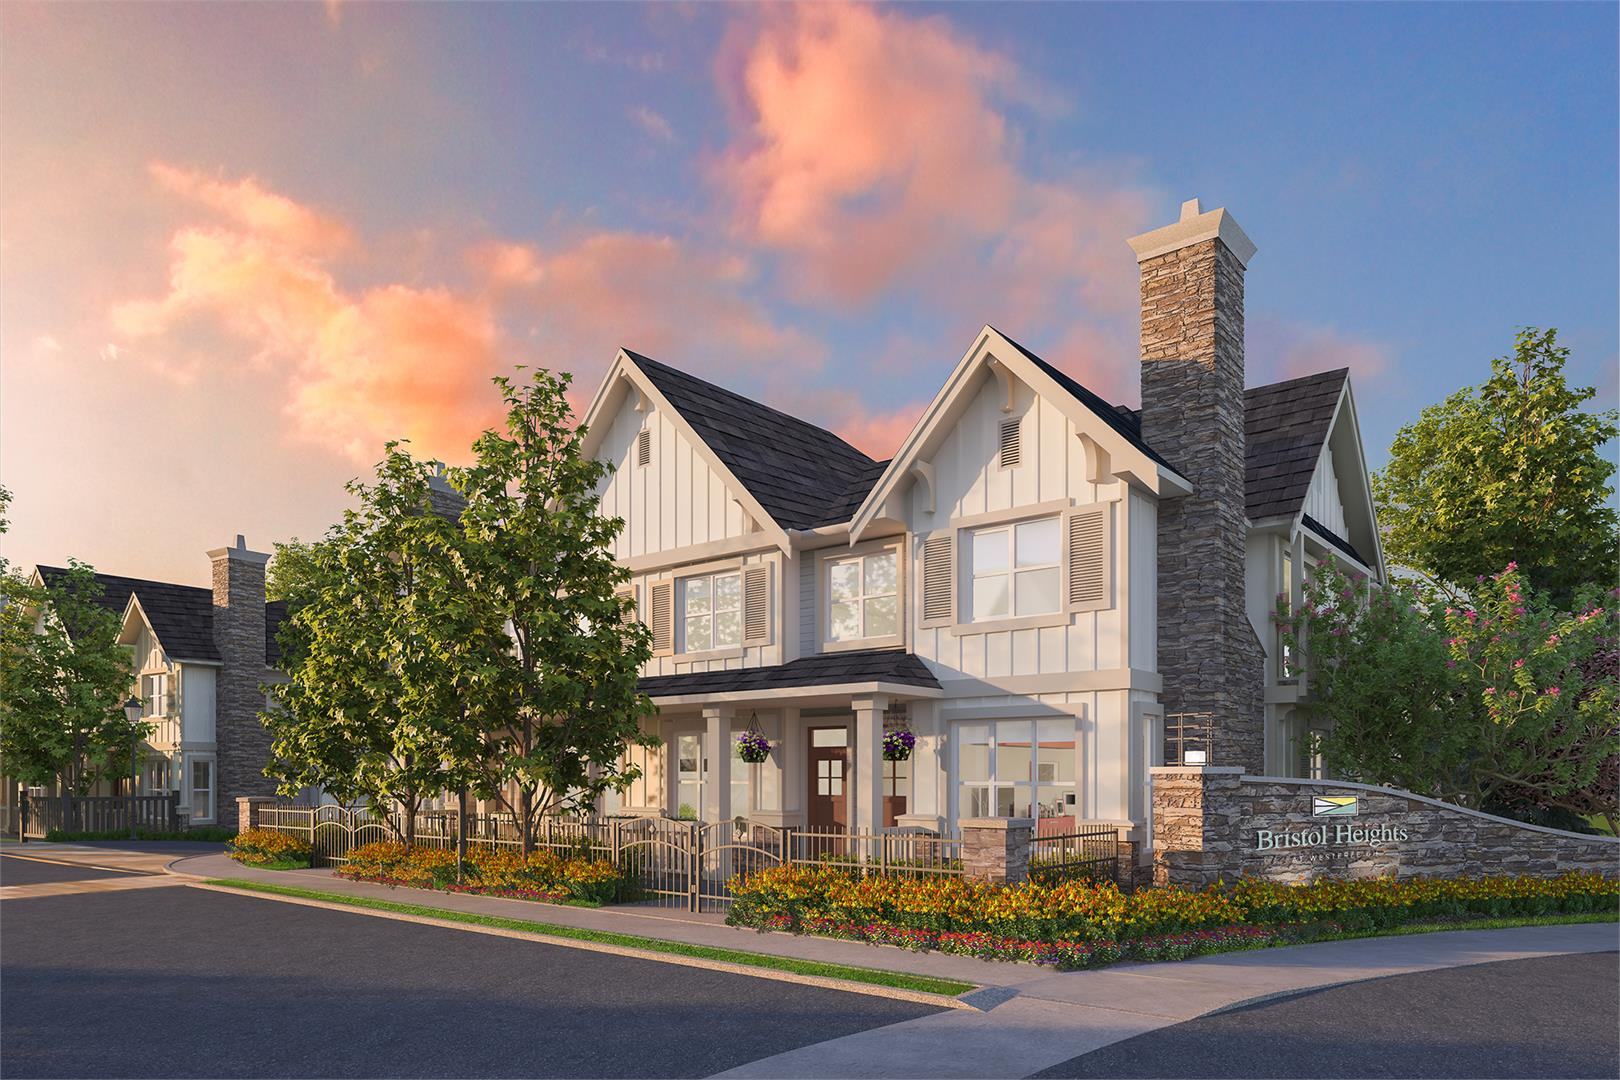 Bristol Heights At Westerleigh – Plans, Prices, Availability